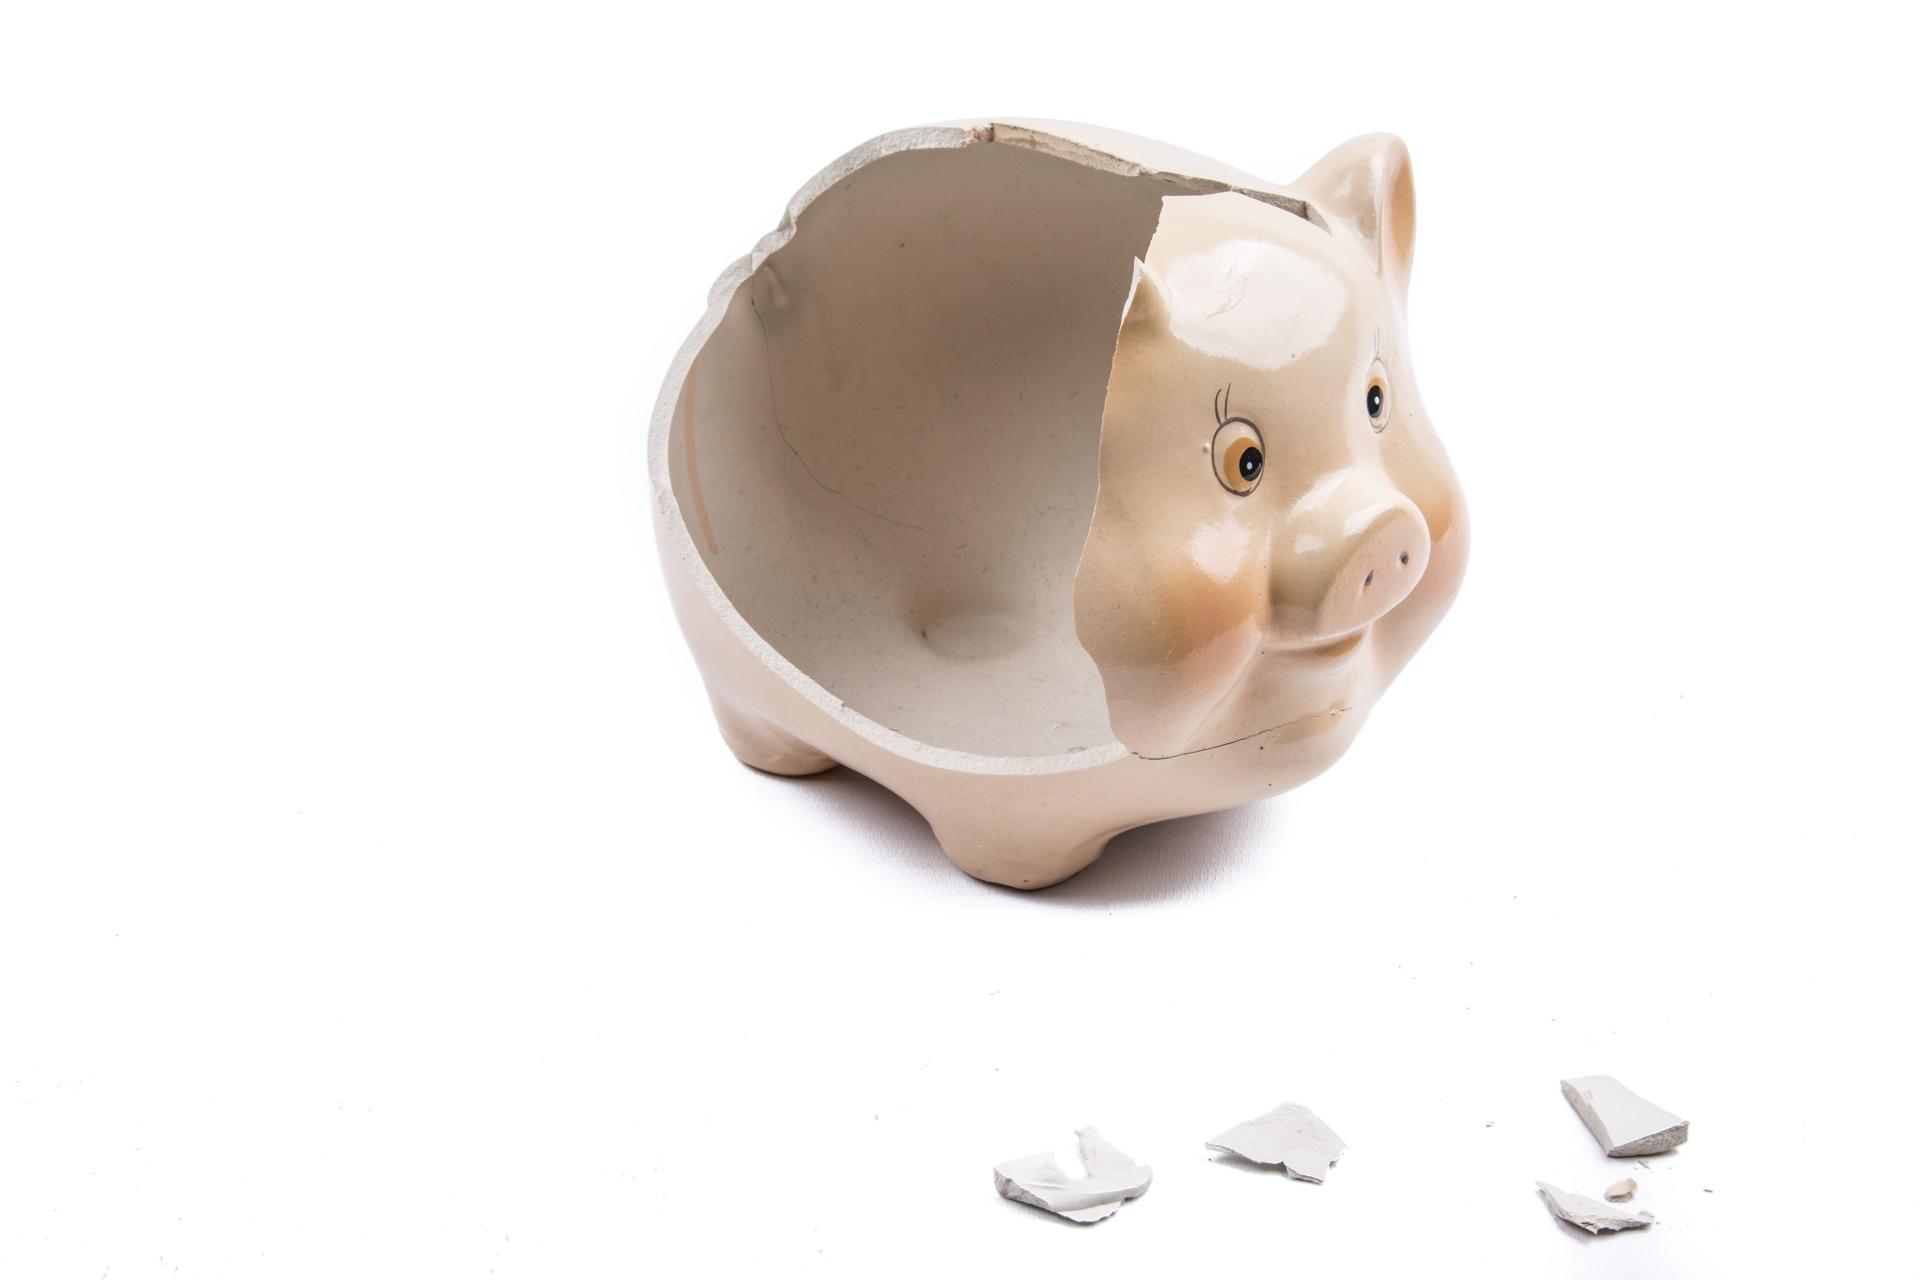 Broken piggy bank shows how home loans may become unaffordable